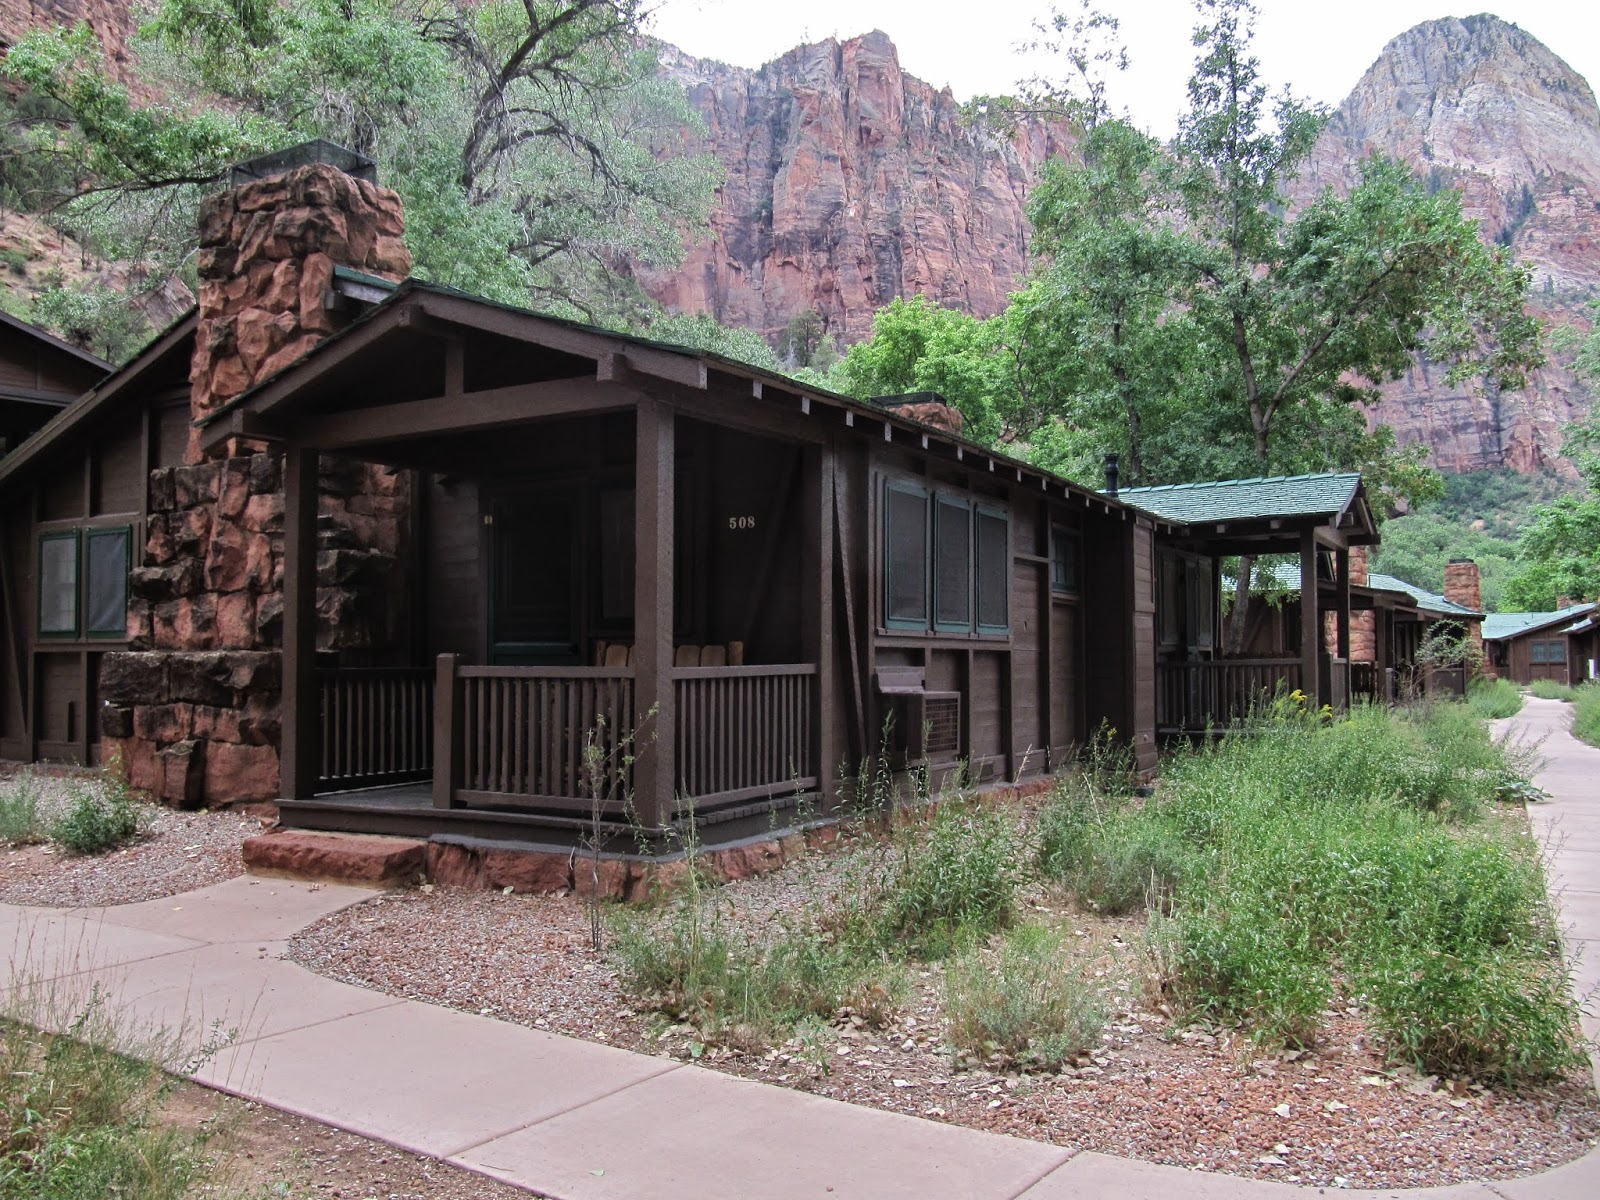 charm offers loads guest zion is the tropic unique qu of pin each splendid canyon and rooms cabins quiet absolutely ut six lodge seclusion inn with views stone